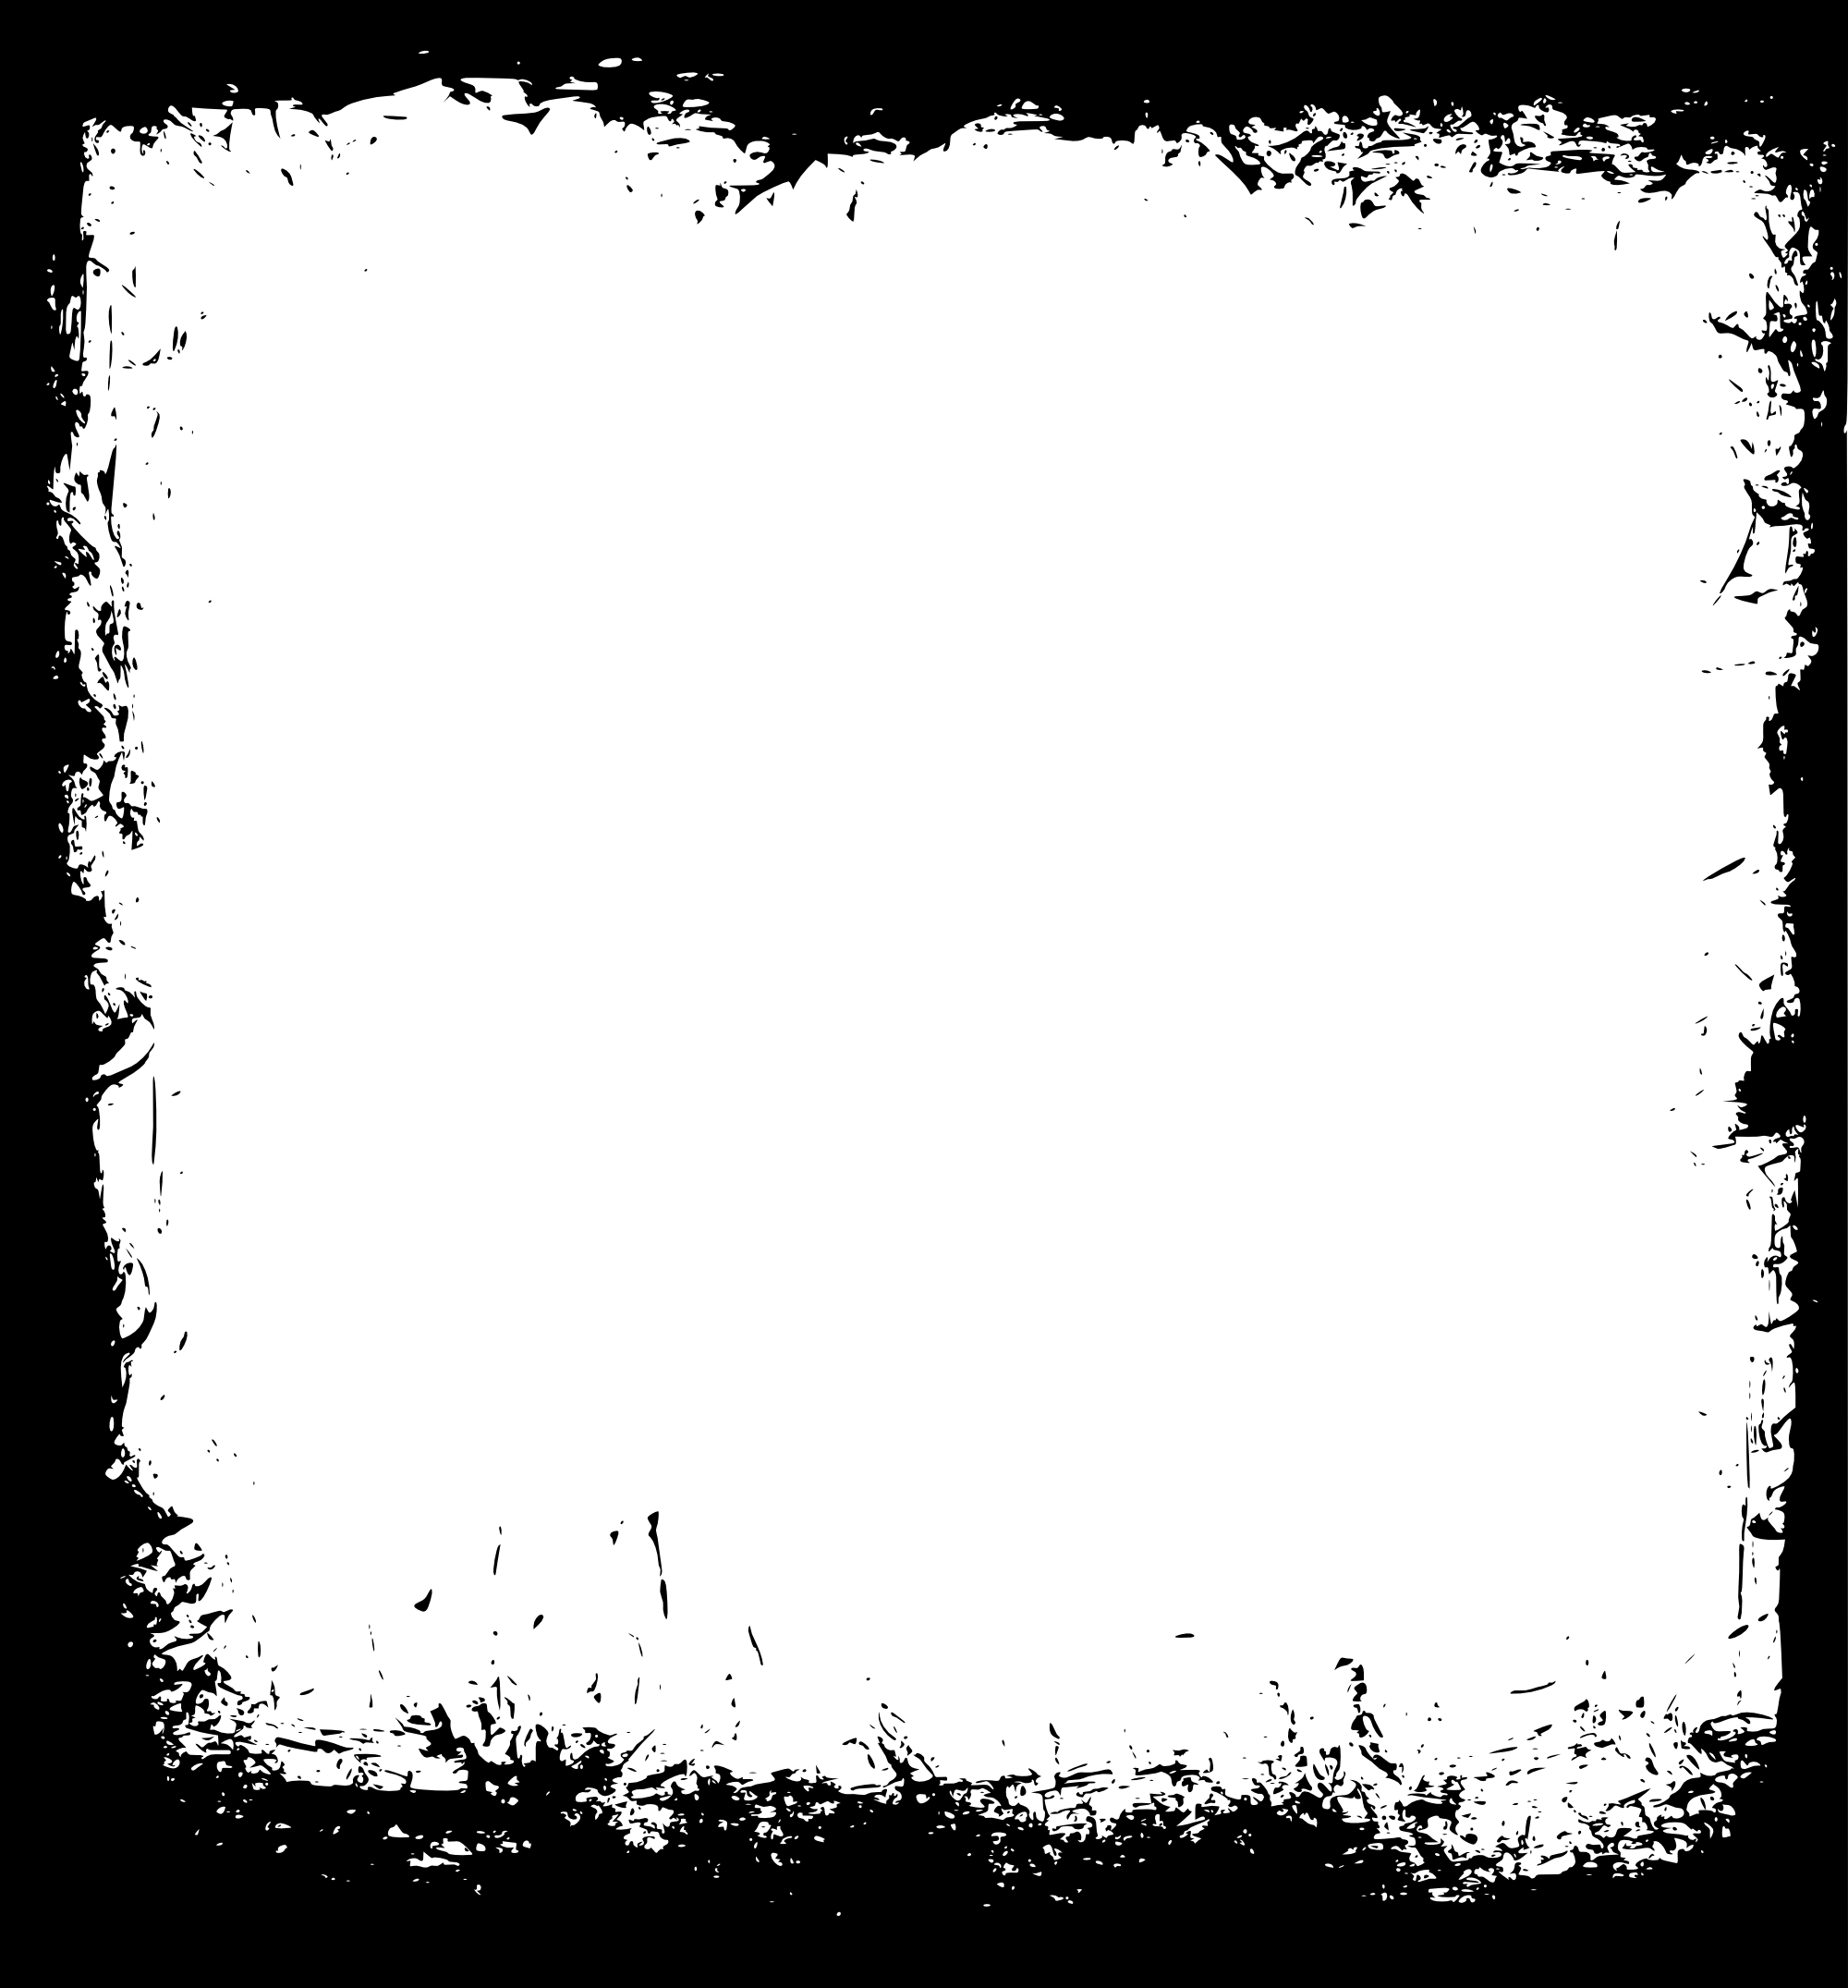 Brush frame png. Square grunge transparent